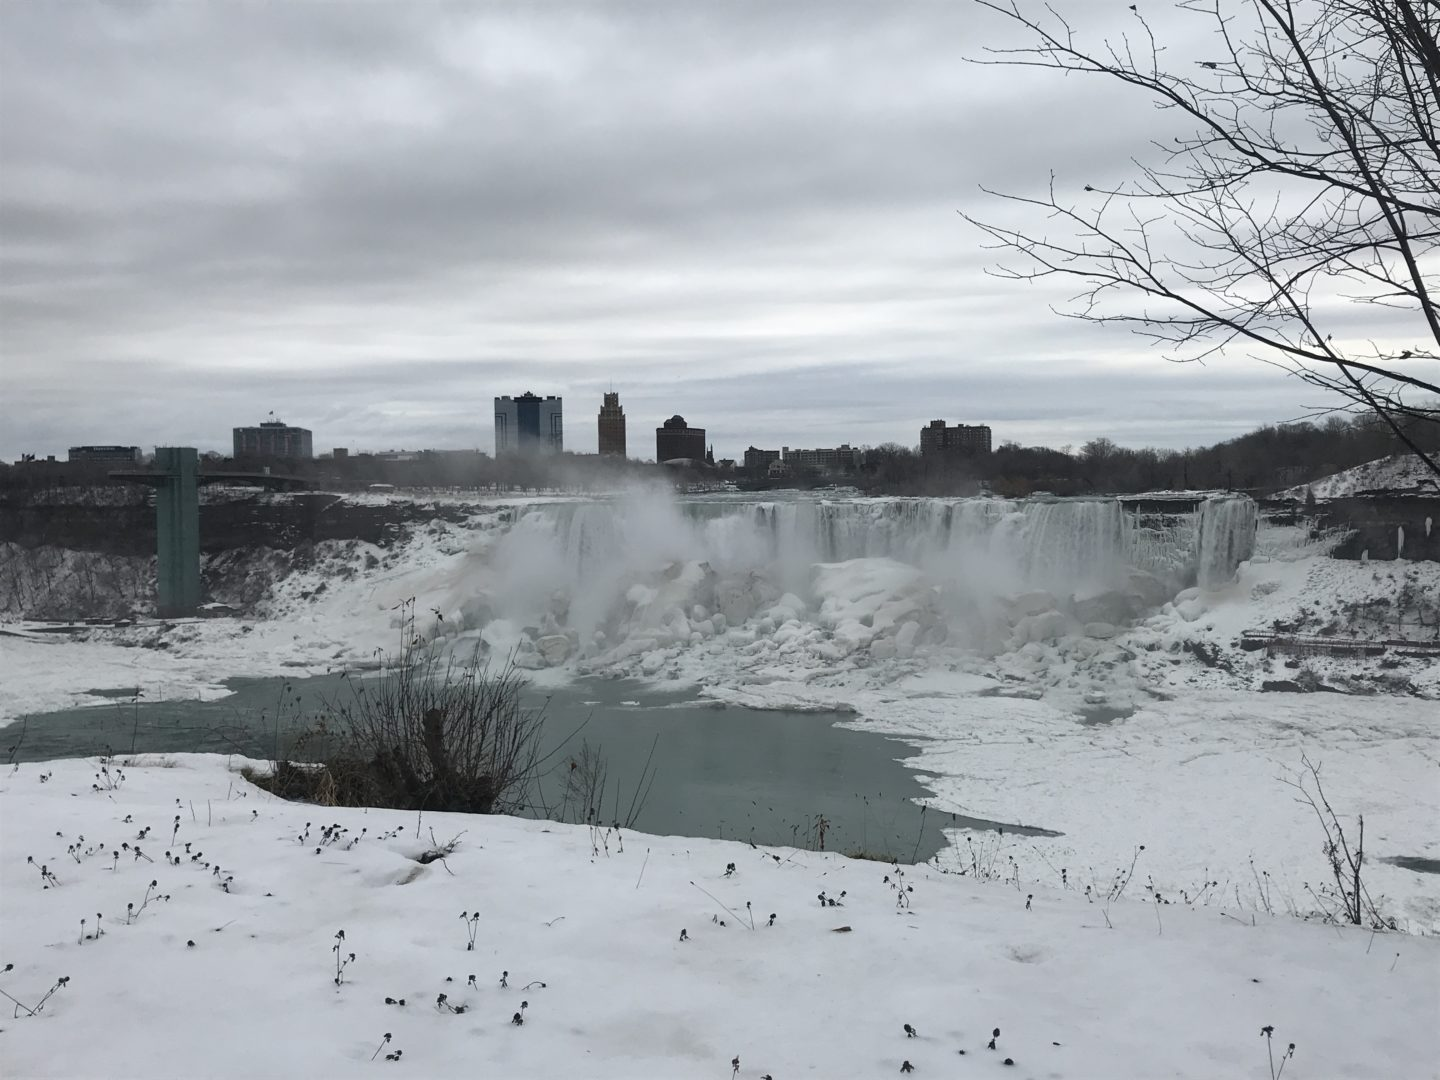 niagara falls frozen in winter